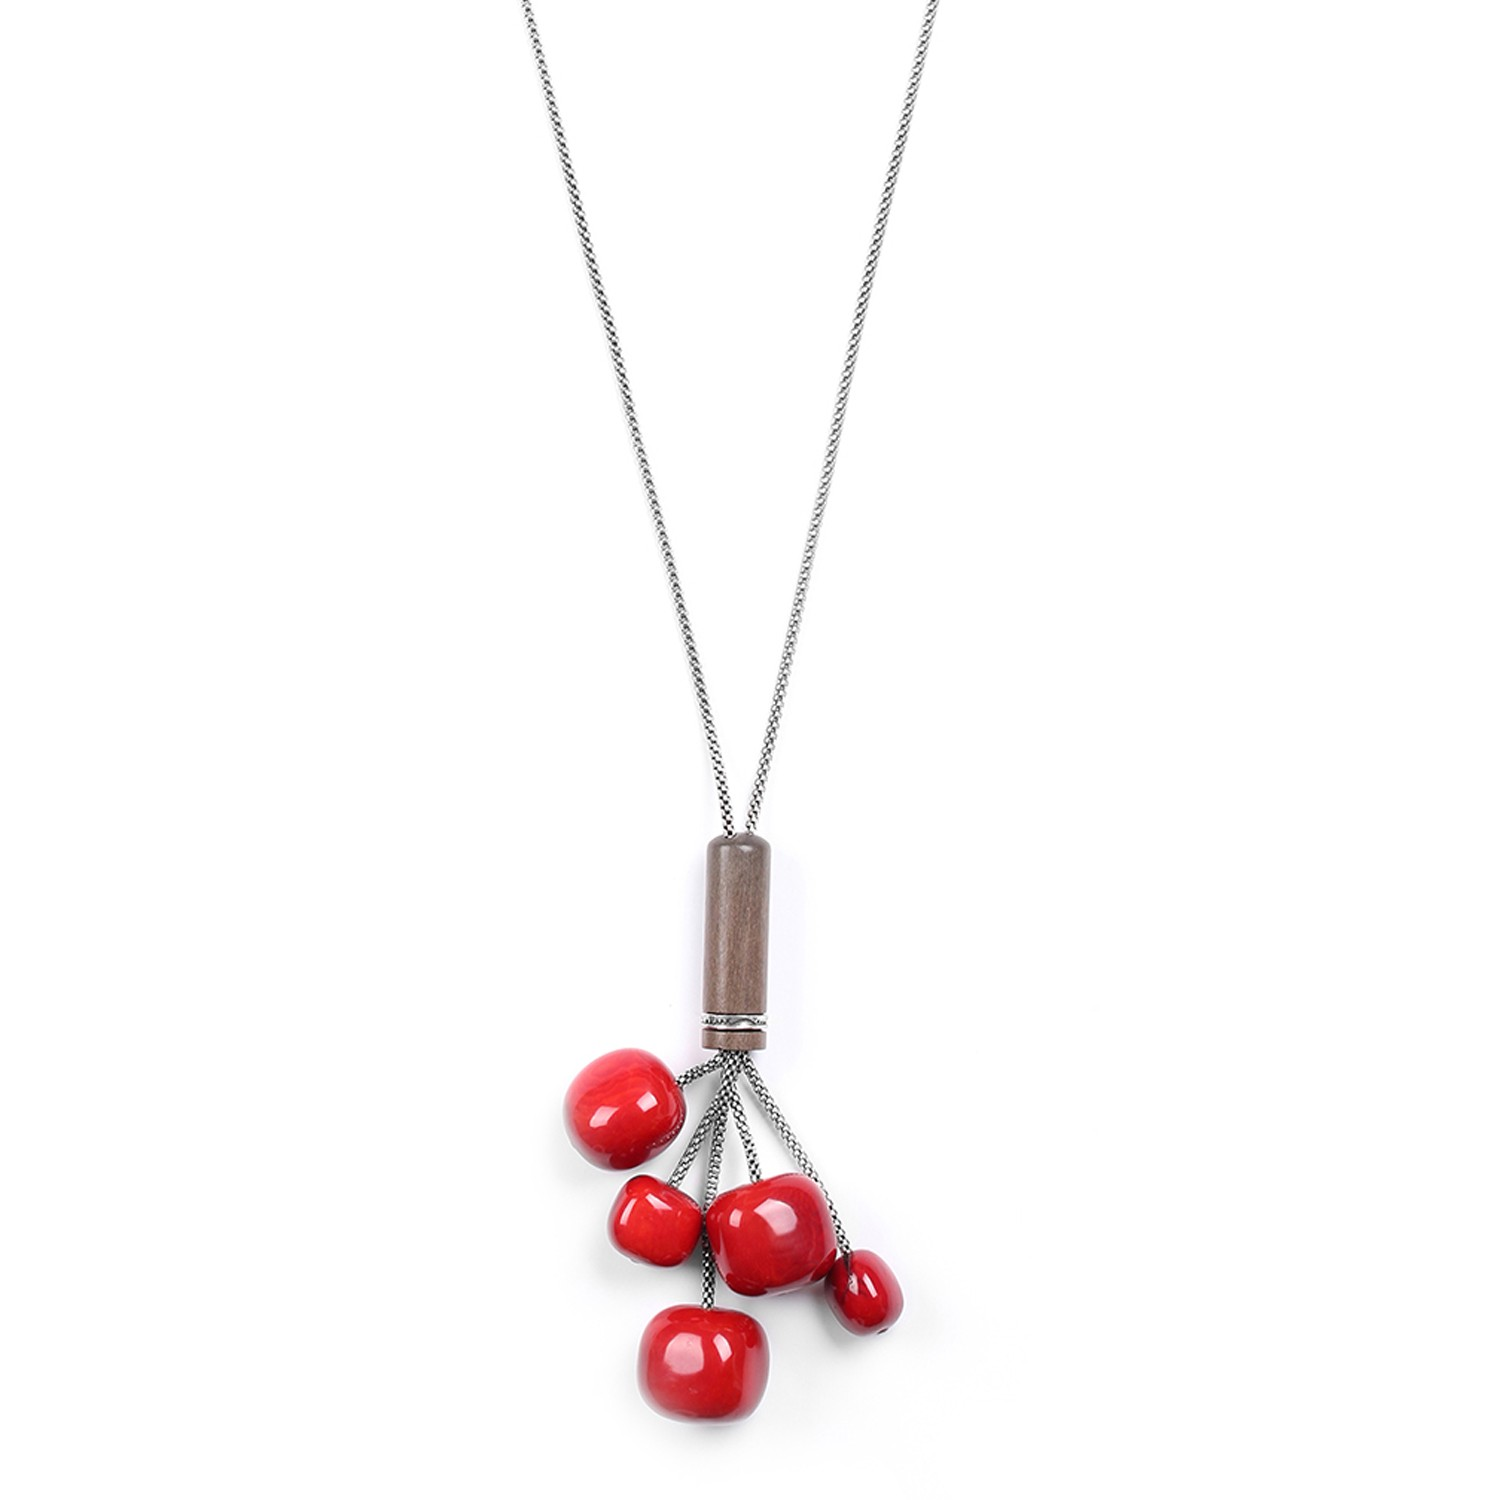 MAUNA LOA long necklace